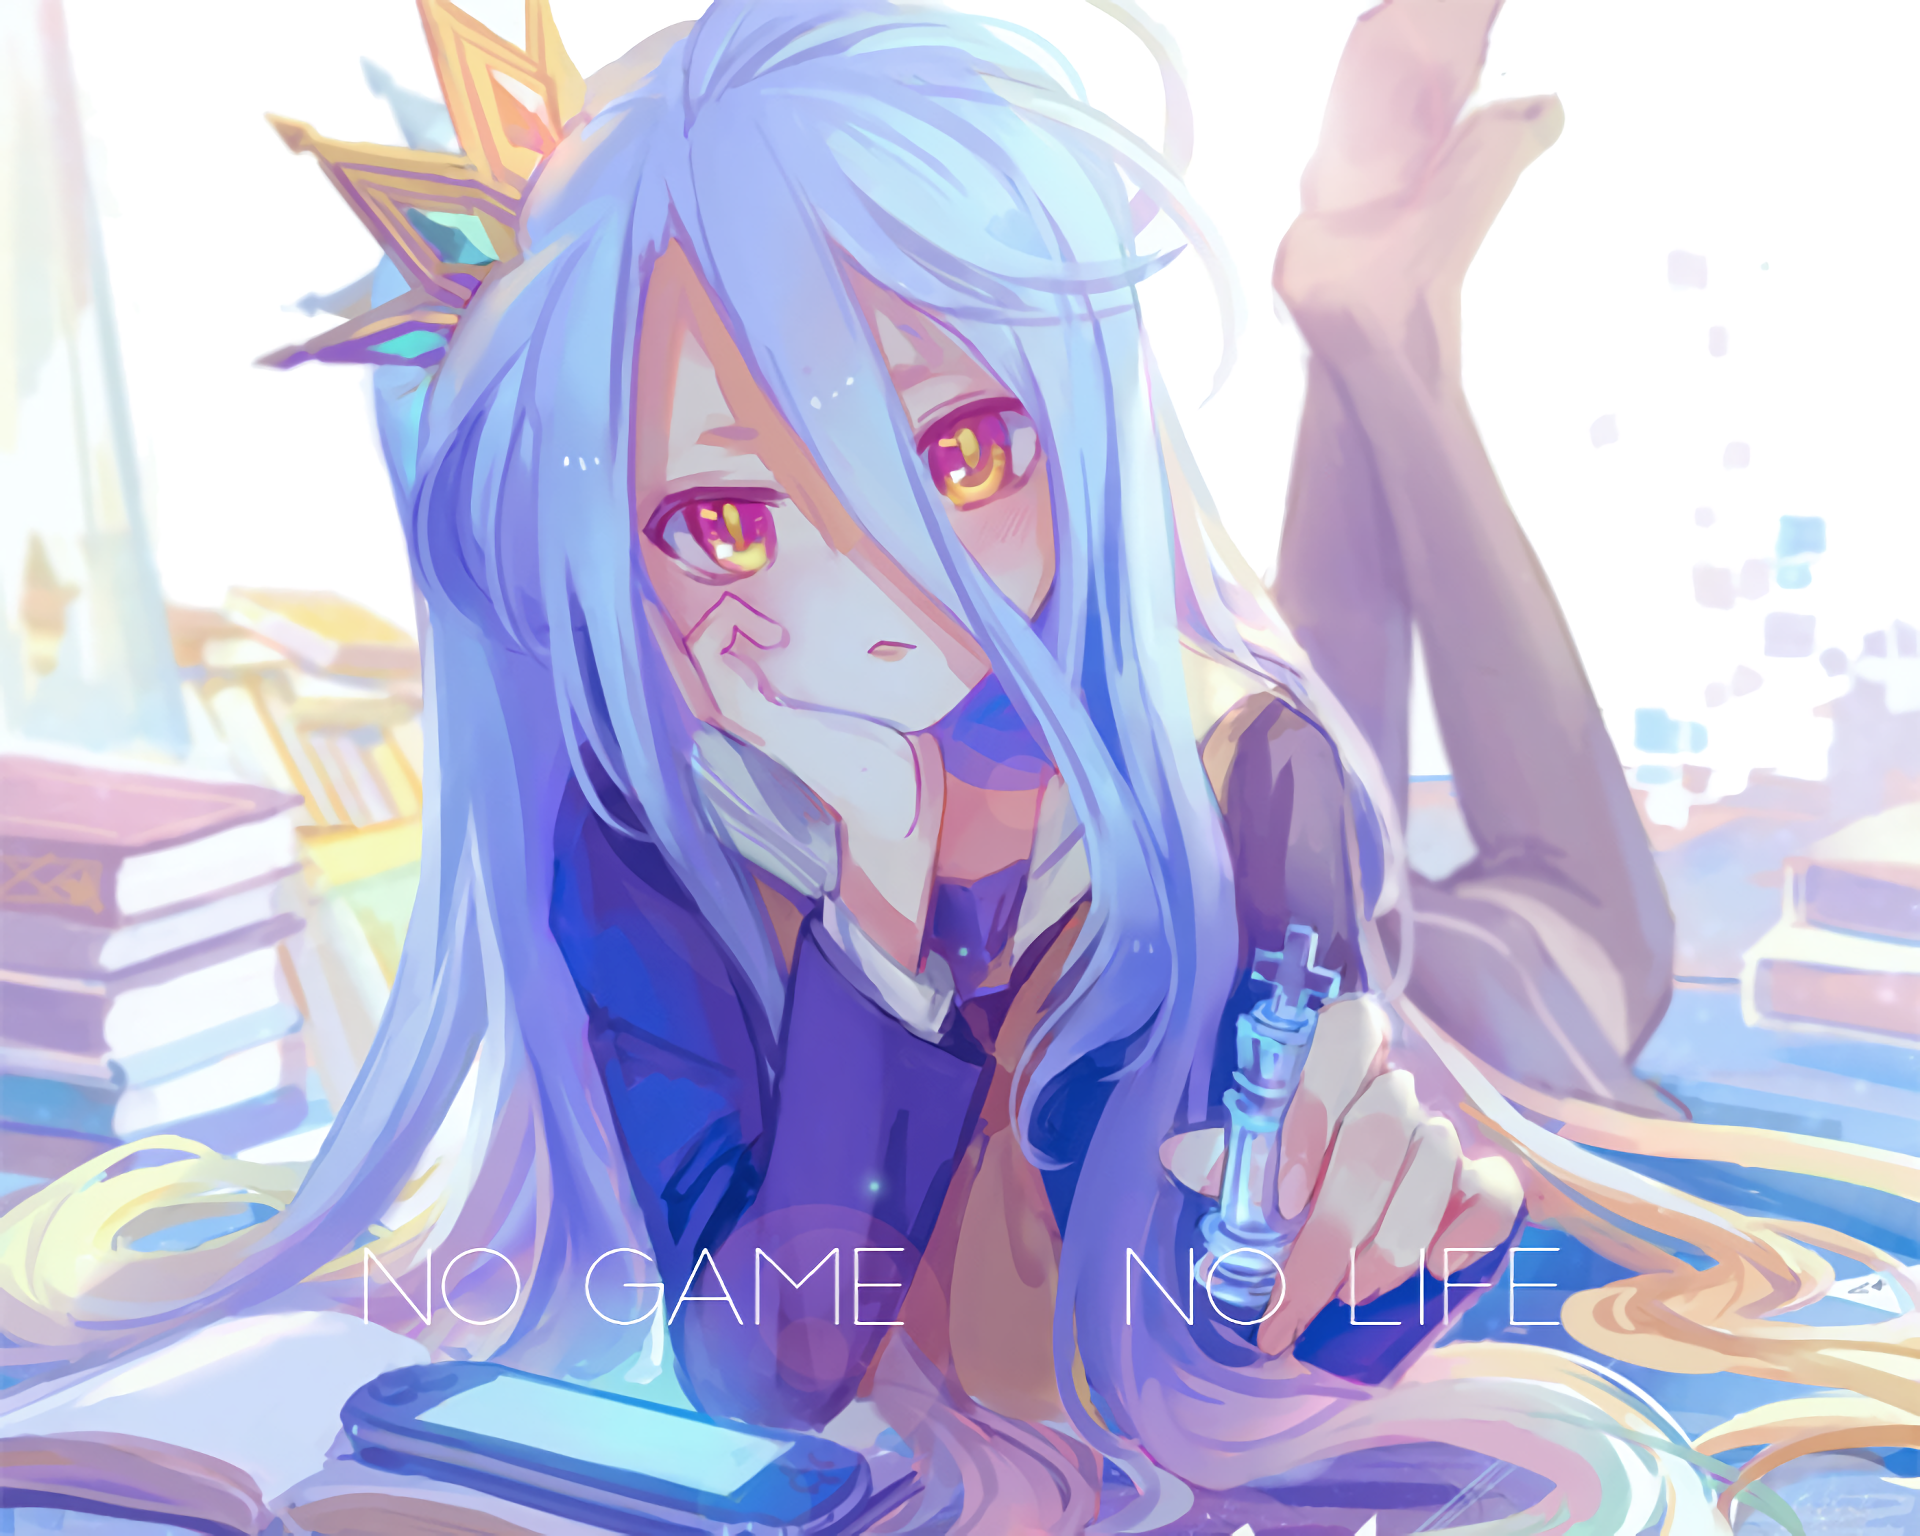 694 No Game No Life Hd Wallpapers Background Images Wallpaper